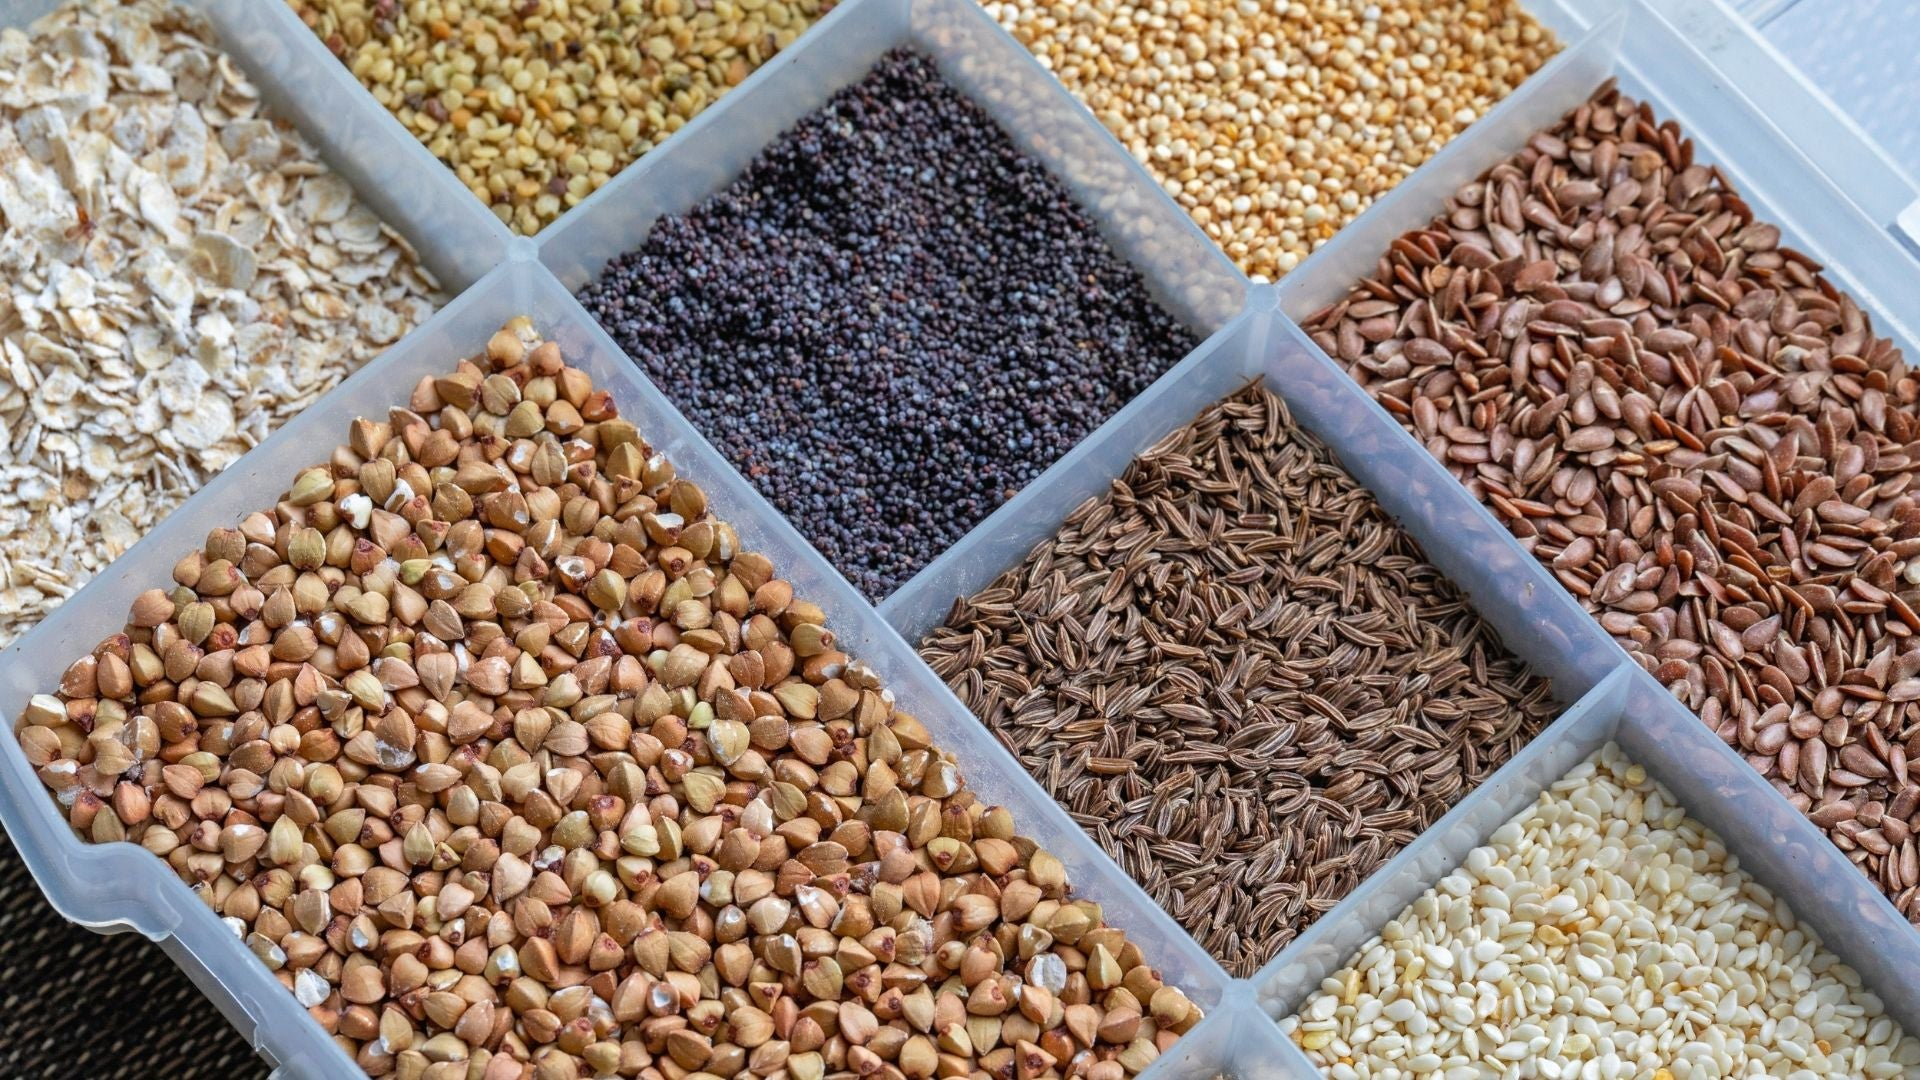 Grain Selection and Mixture